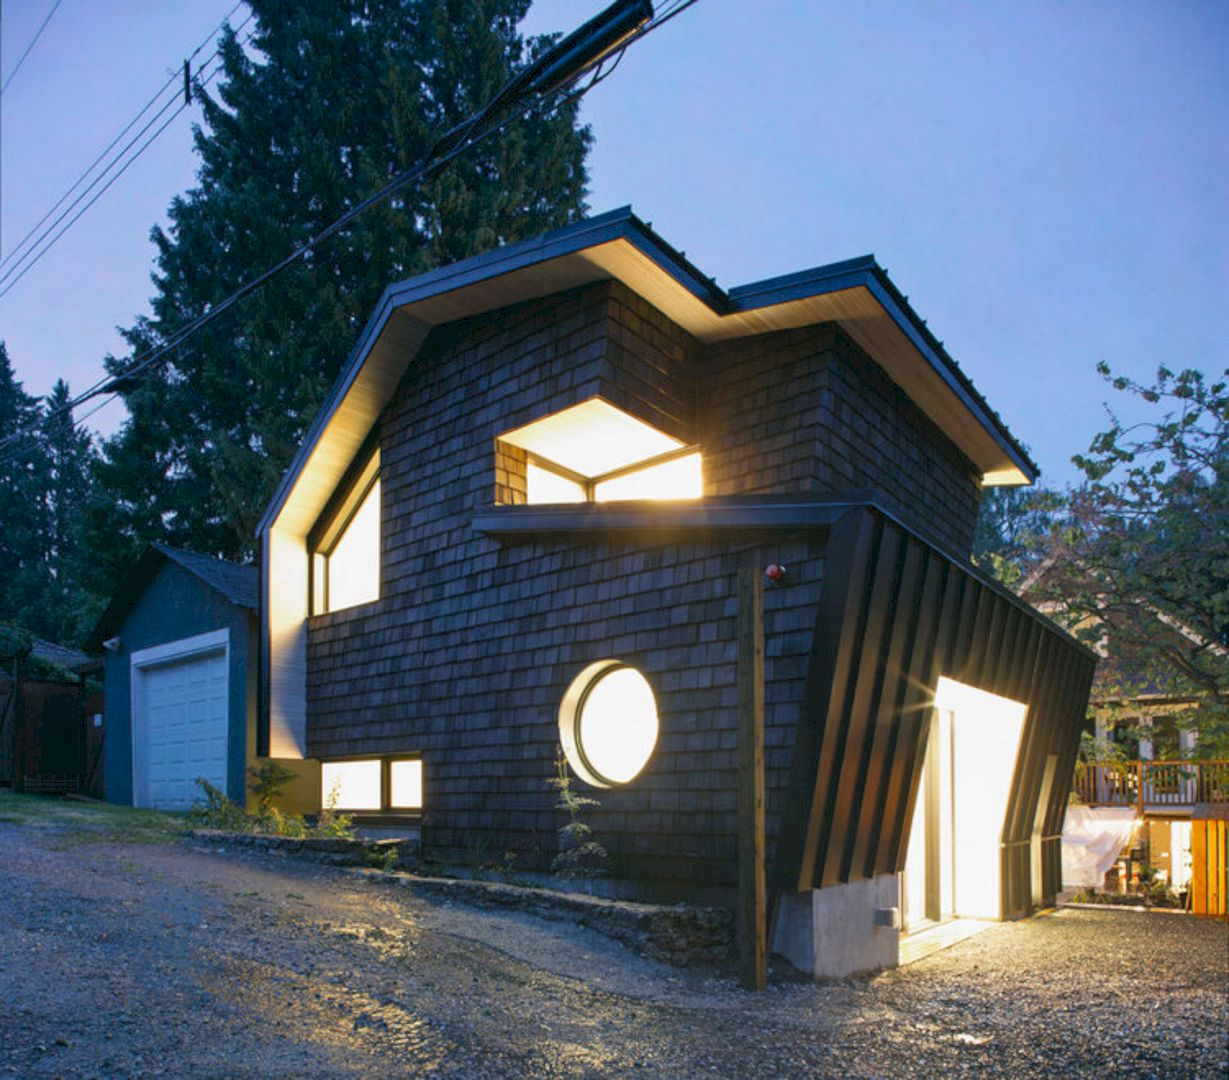 Point Grey Laneway By Campos Studio 9